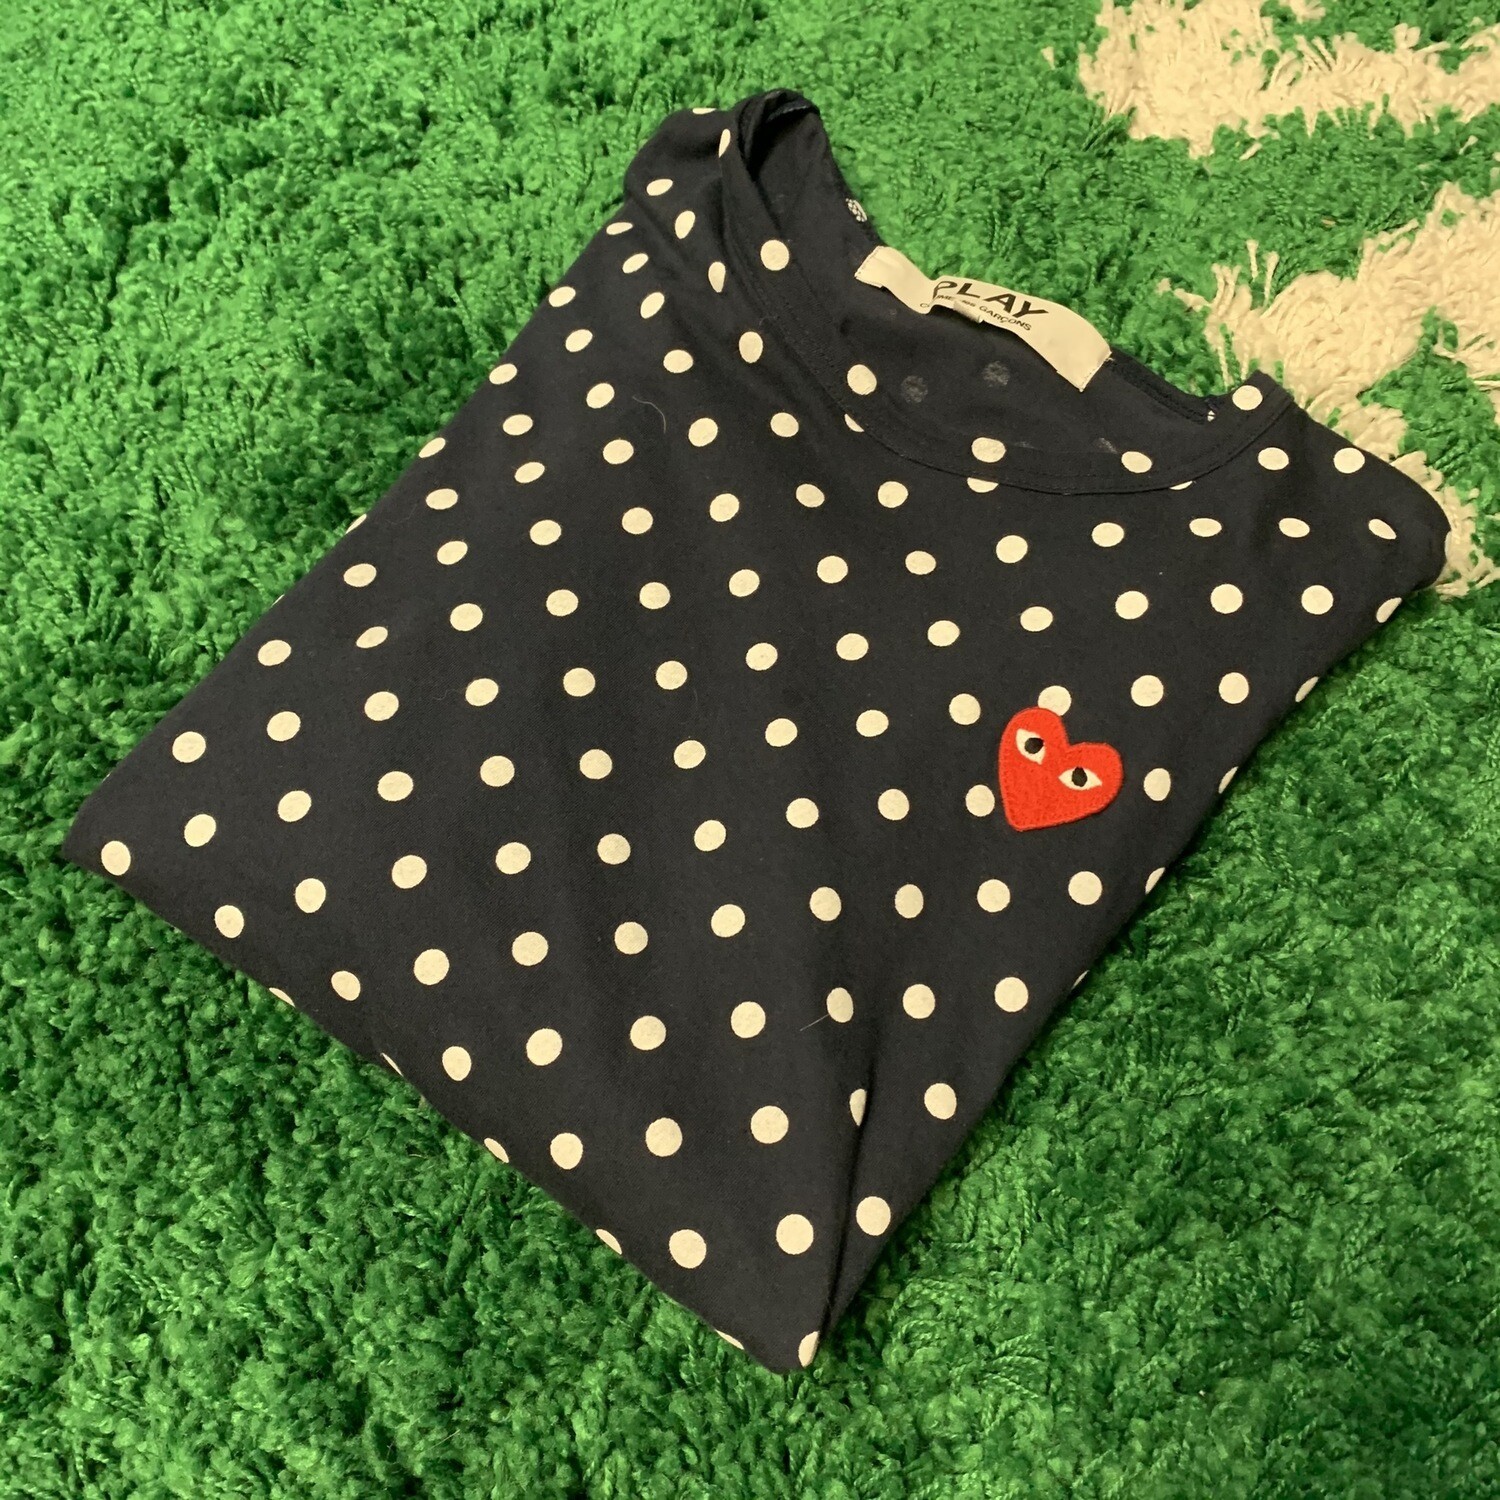 CDG Polka Dot Shirt Size Large